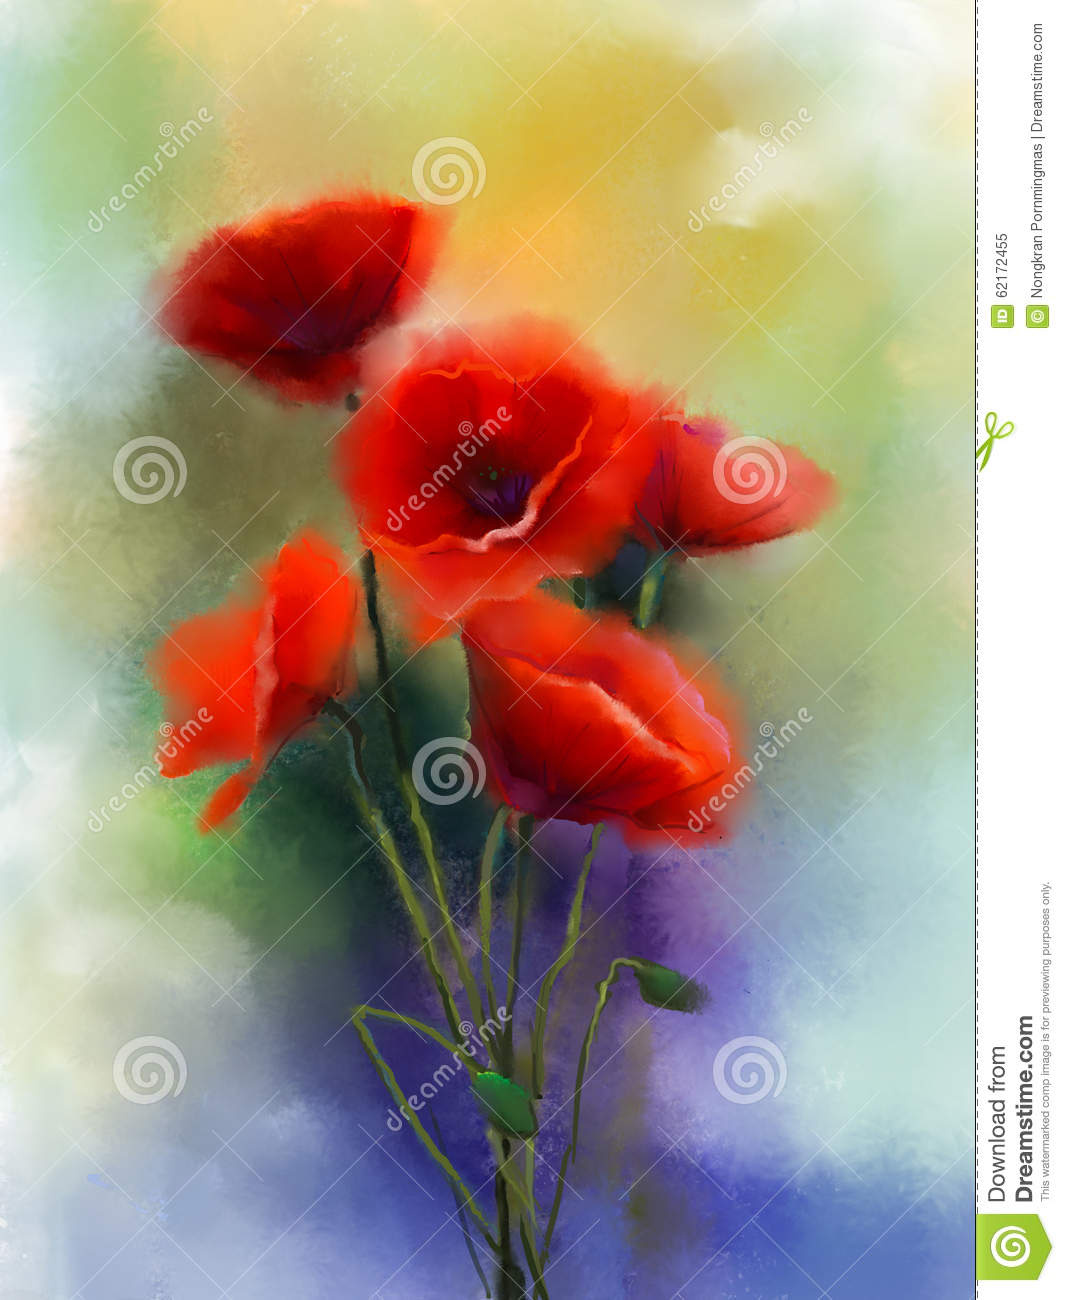 Watercolor red poppy flowers painting stock illustration download comp mightylinksfo